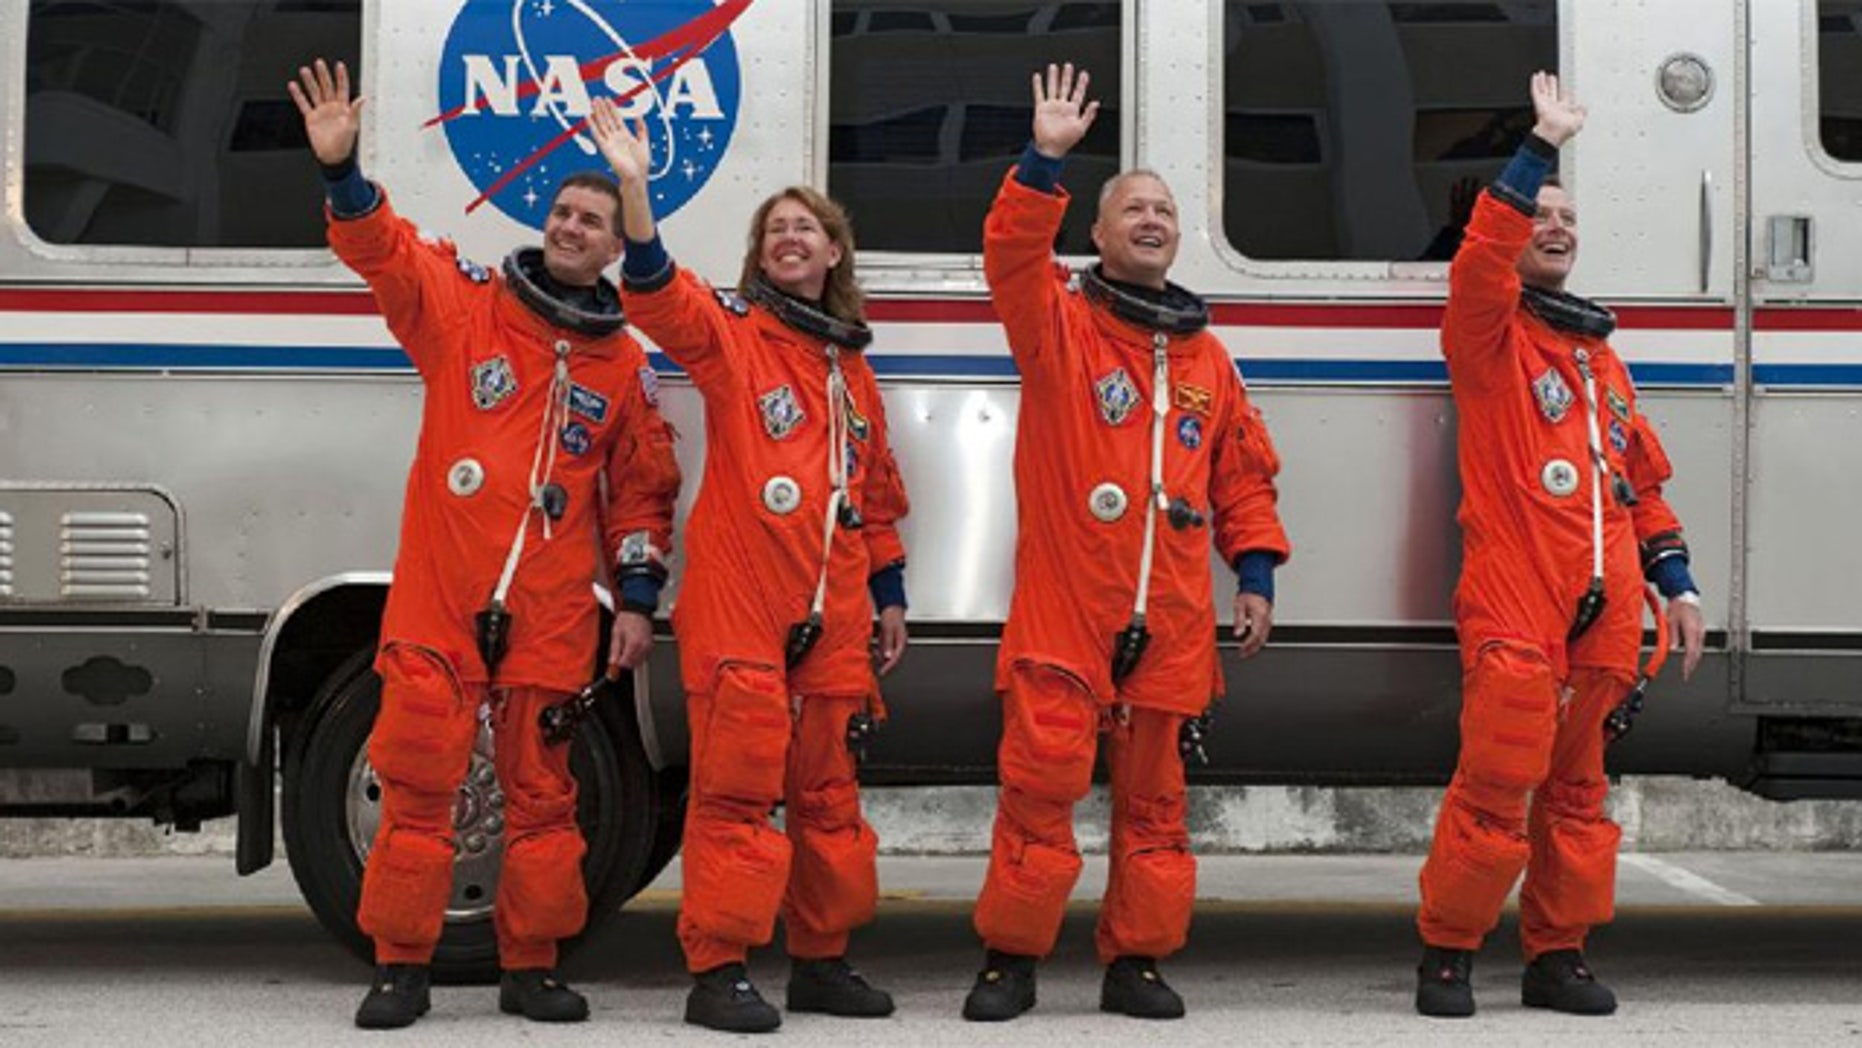 The final crew of Space Shuttle Atlantis (from left to right): mission specialists Rex Walheim and Sandy Magnus, pilot Doug Hurley, and command Chris Ferguson.